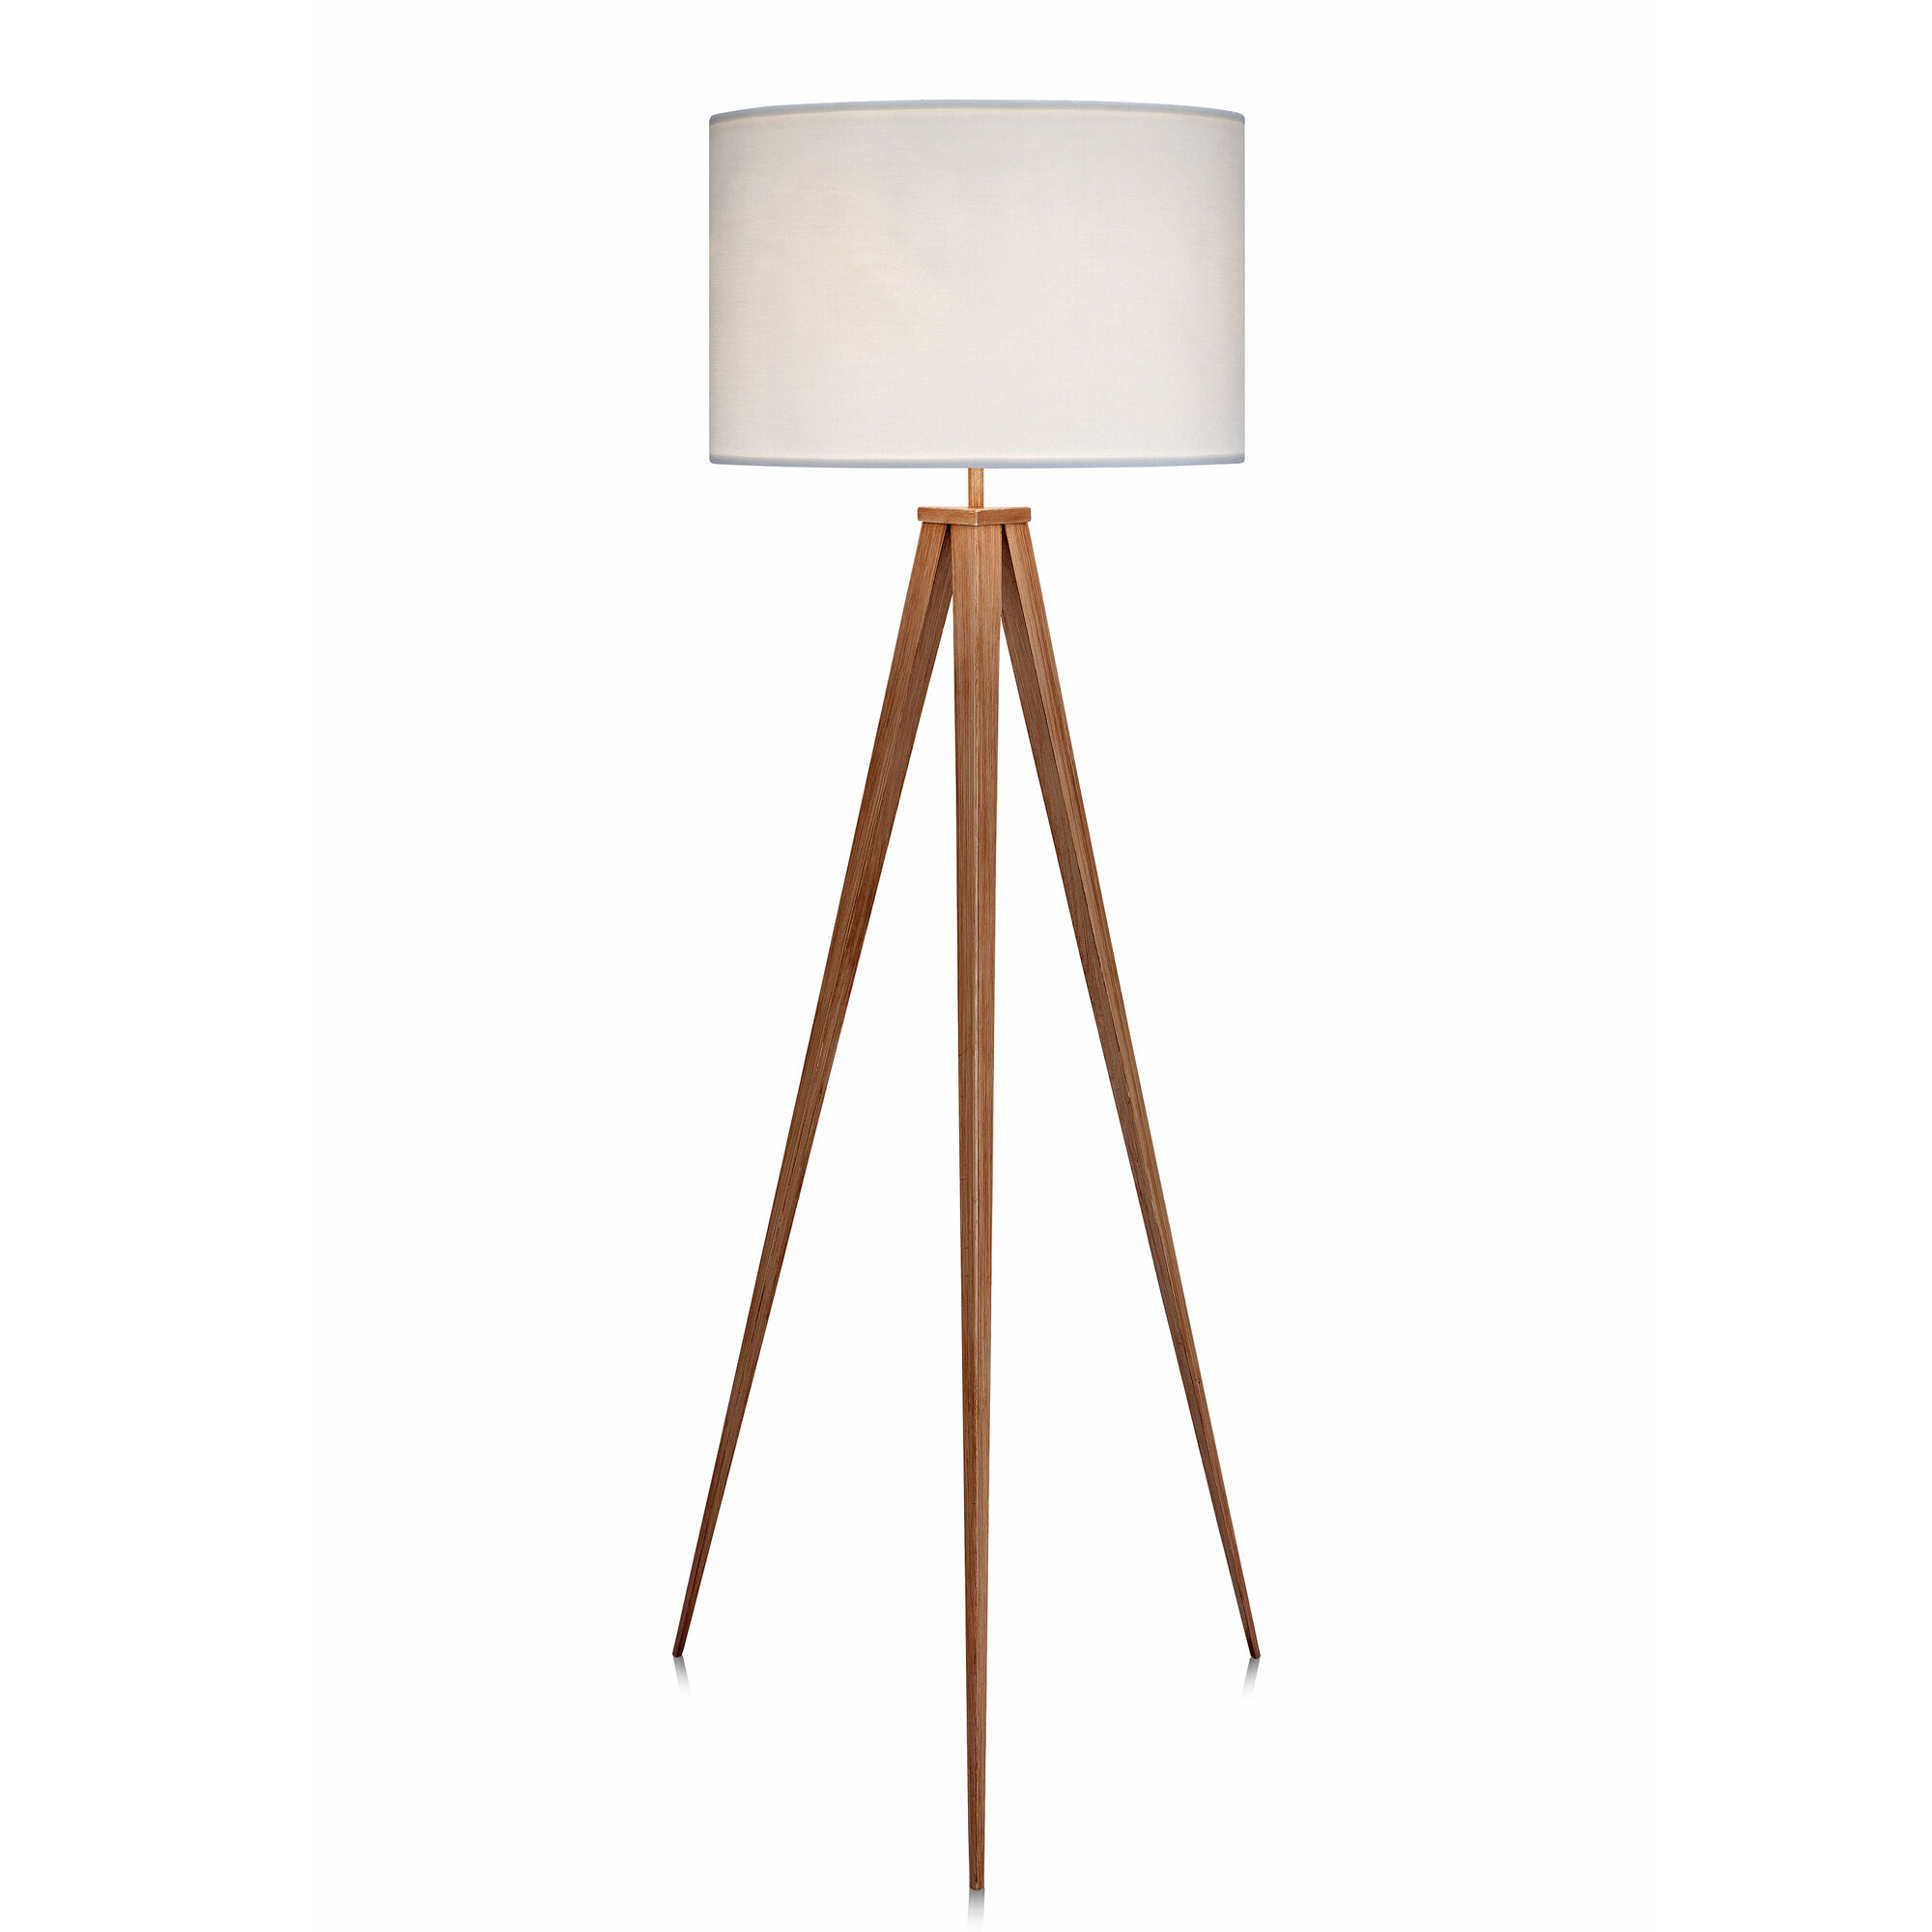 Floor Lamps Torchieres Lighting Modern Copper Metal Tripod Floor Lamp With A Beige Cylinder Shade